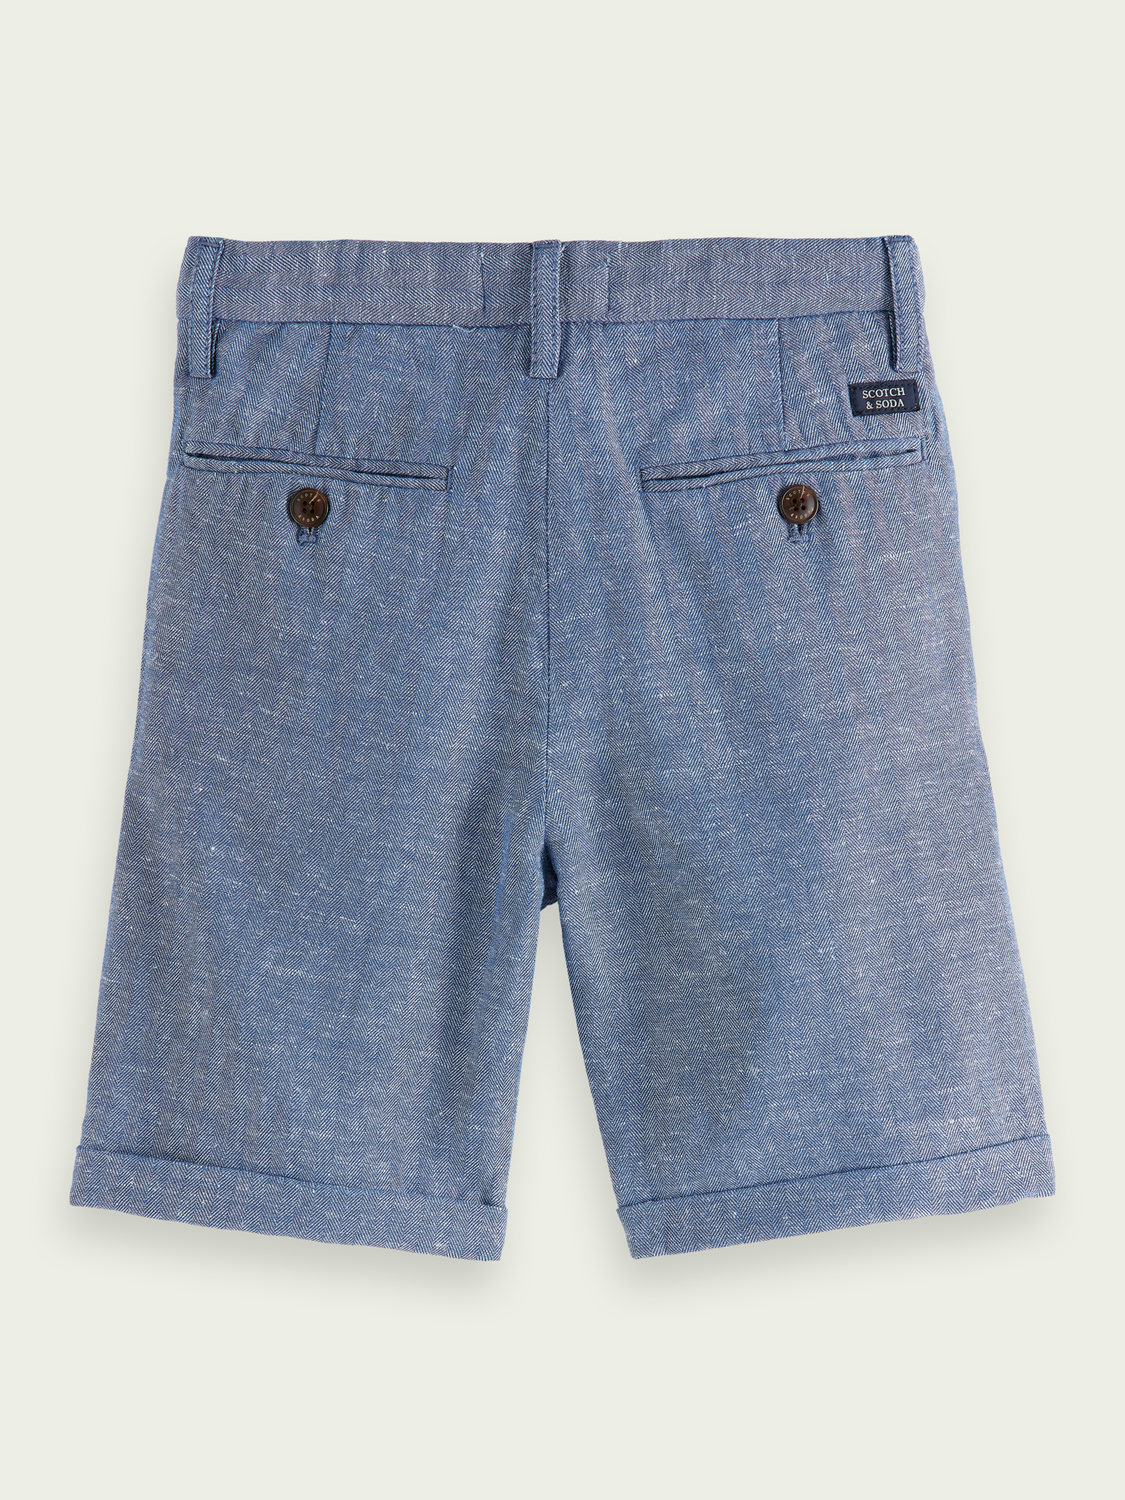 Kids Organic cotton-linen dress shorts